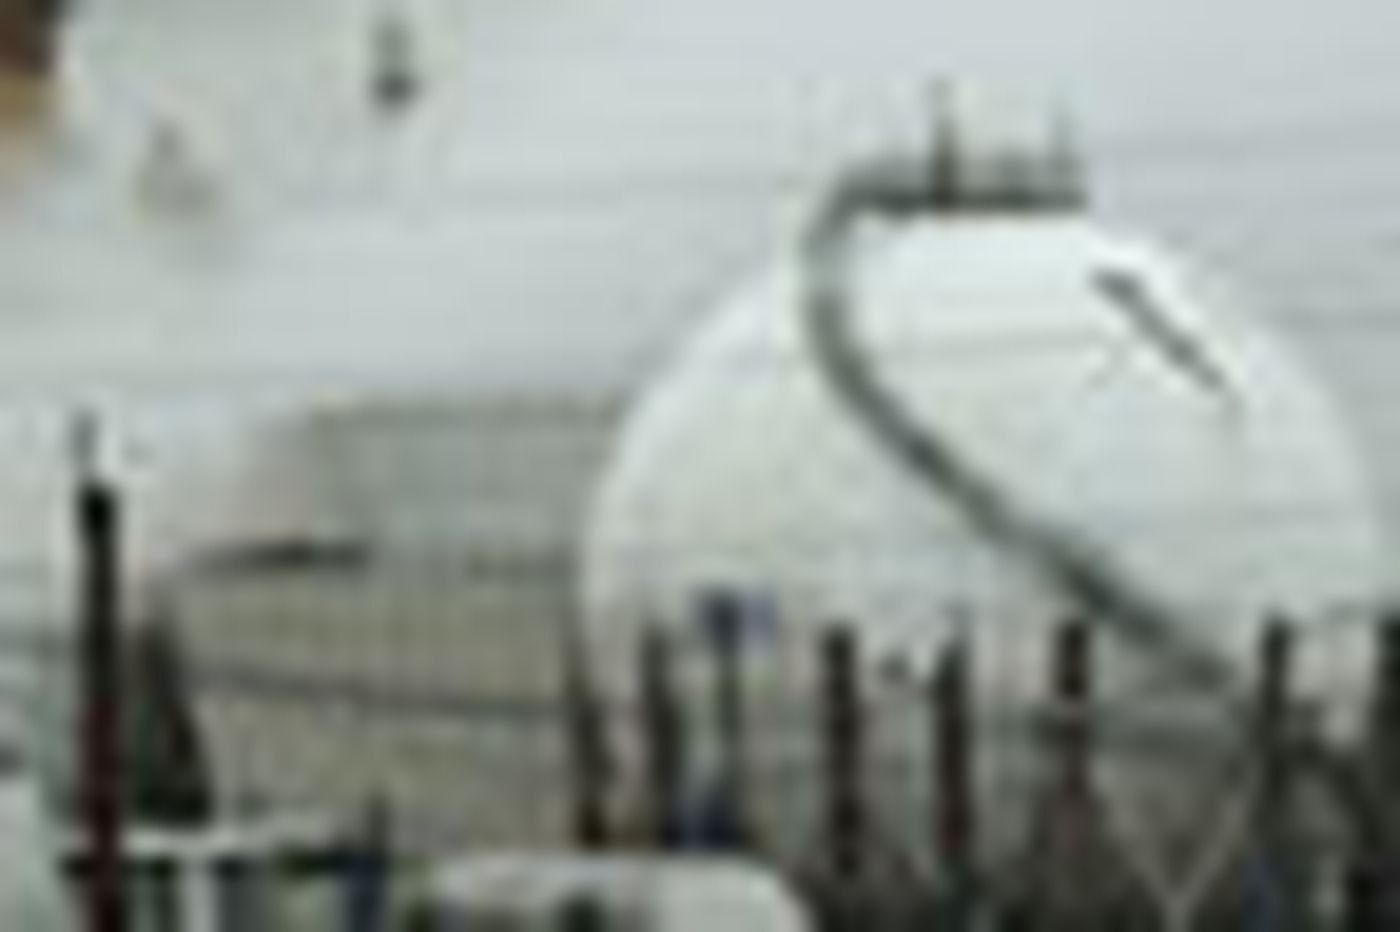 Former Sunoco refinery in Marcus Hook will process Marcellus Shale products